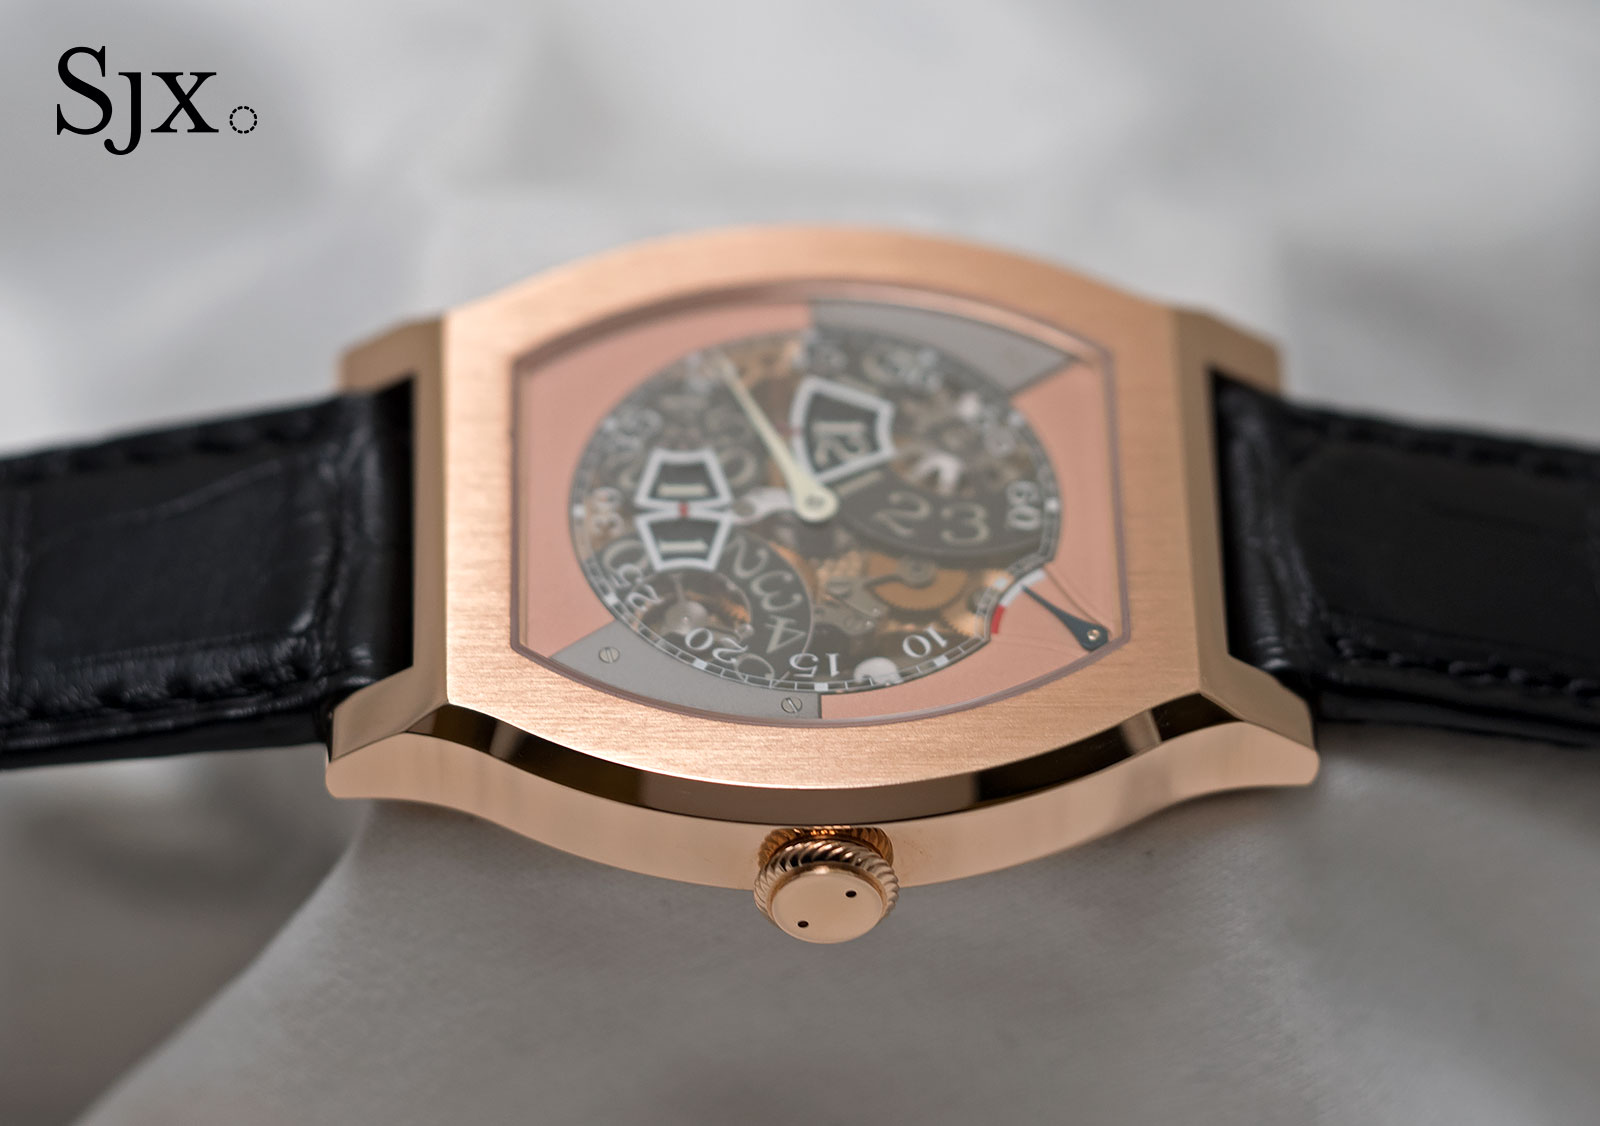 FP Journe Vagabondage III red gold 13